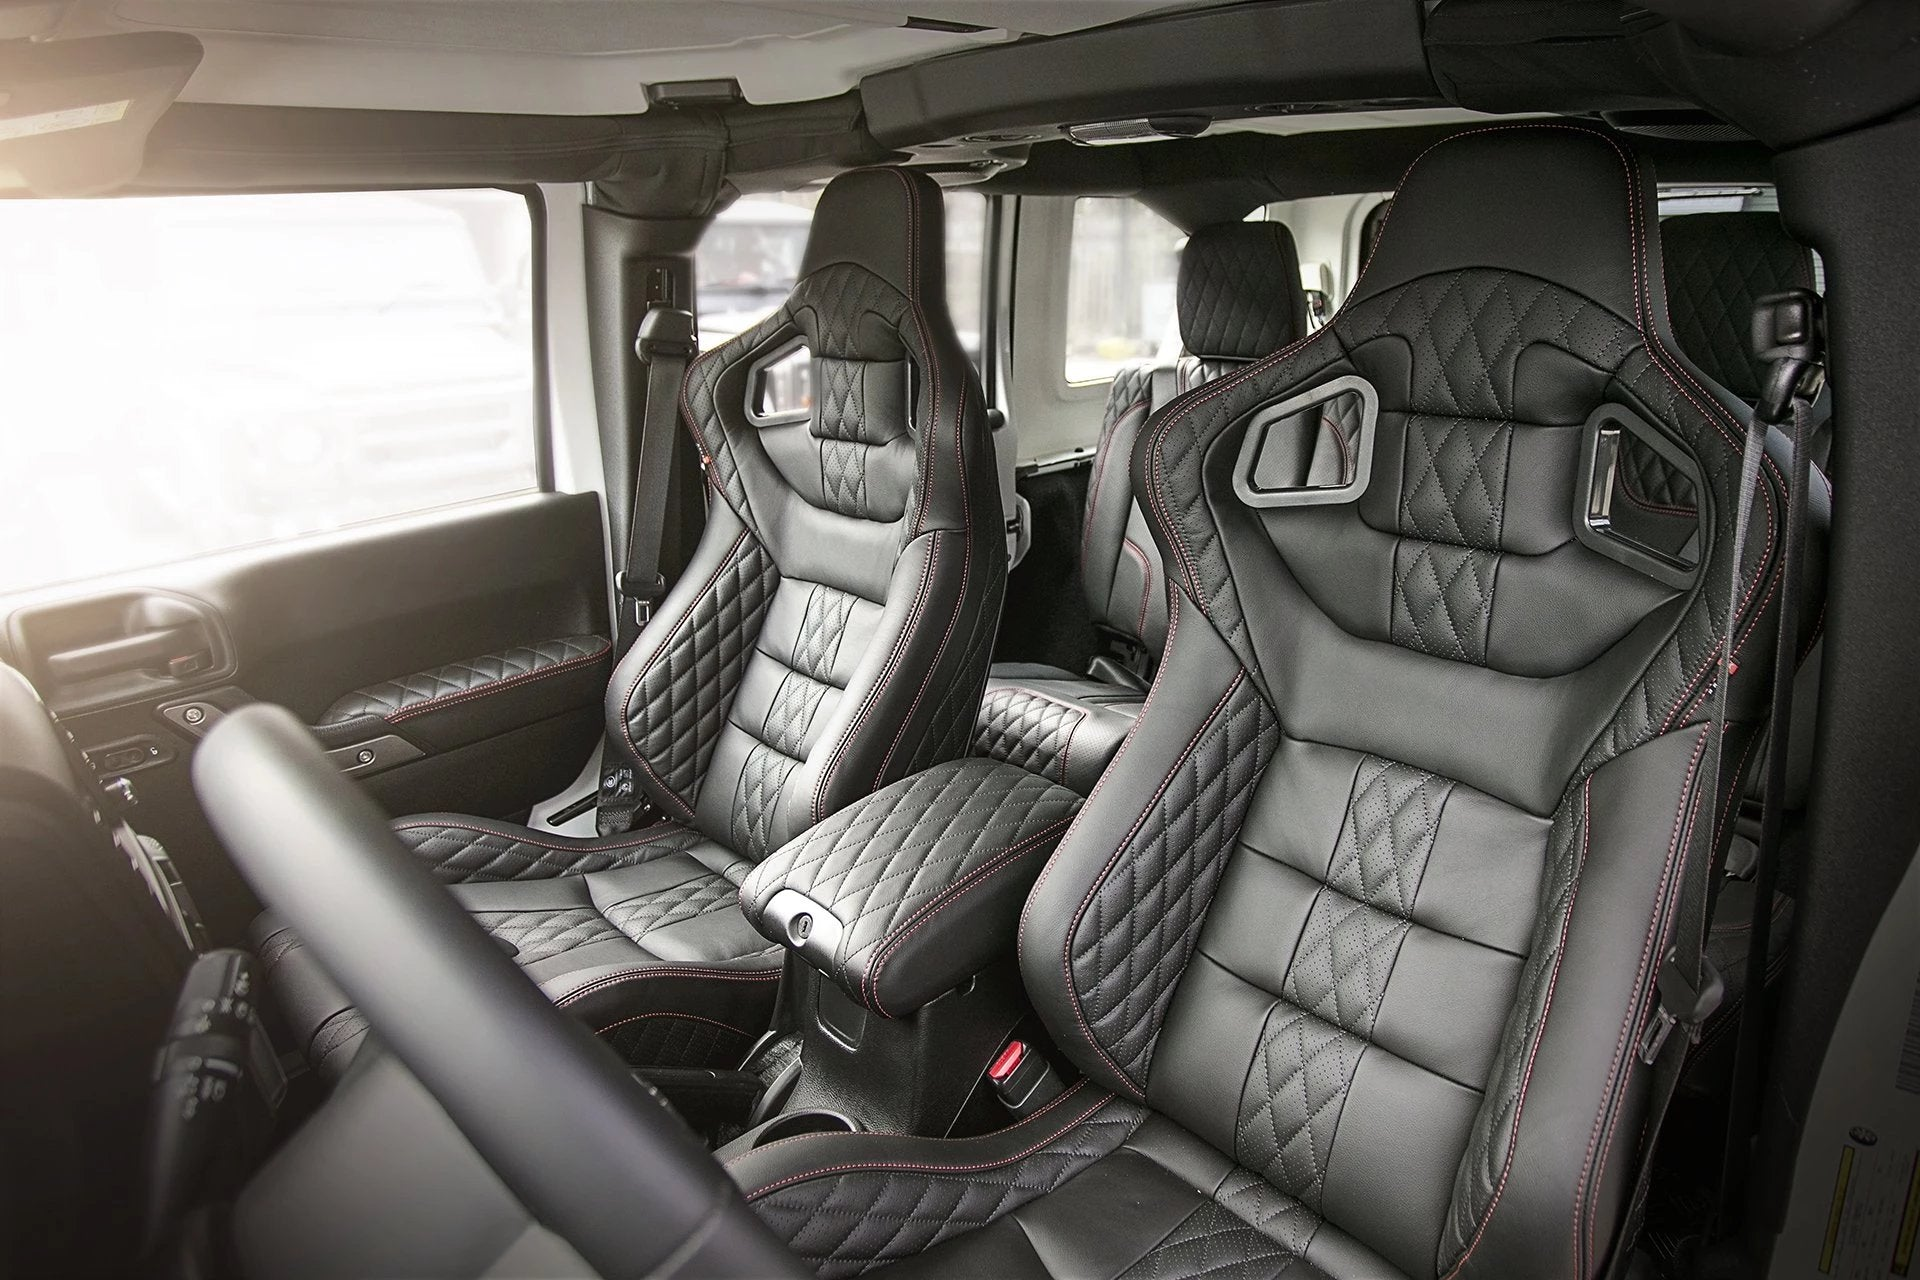 Jeep Wrangler Jk (2011-2018) 4 Door Leather Interior by Chelsea Truck Company - Image 1382